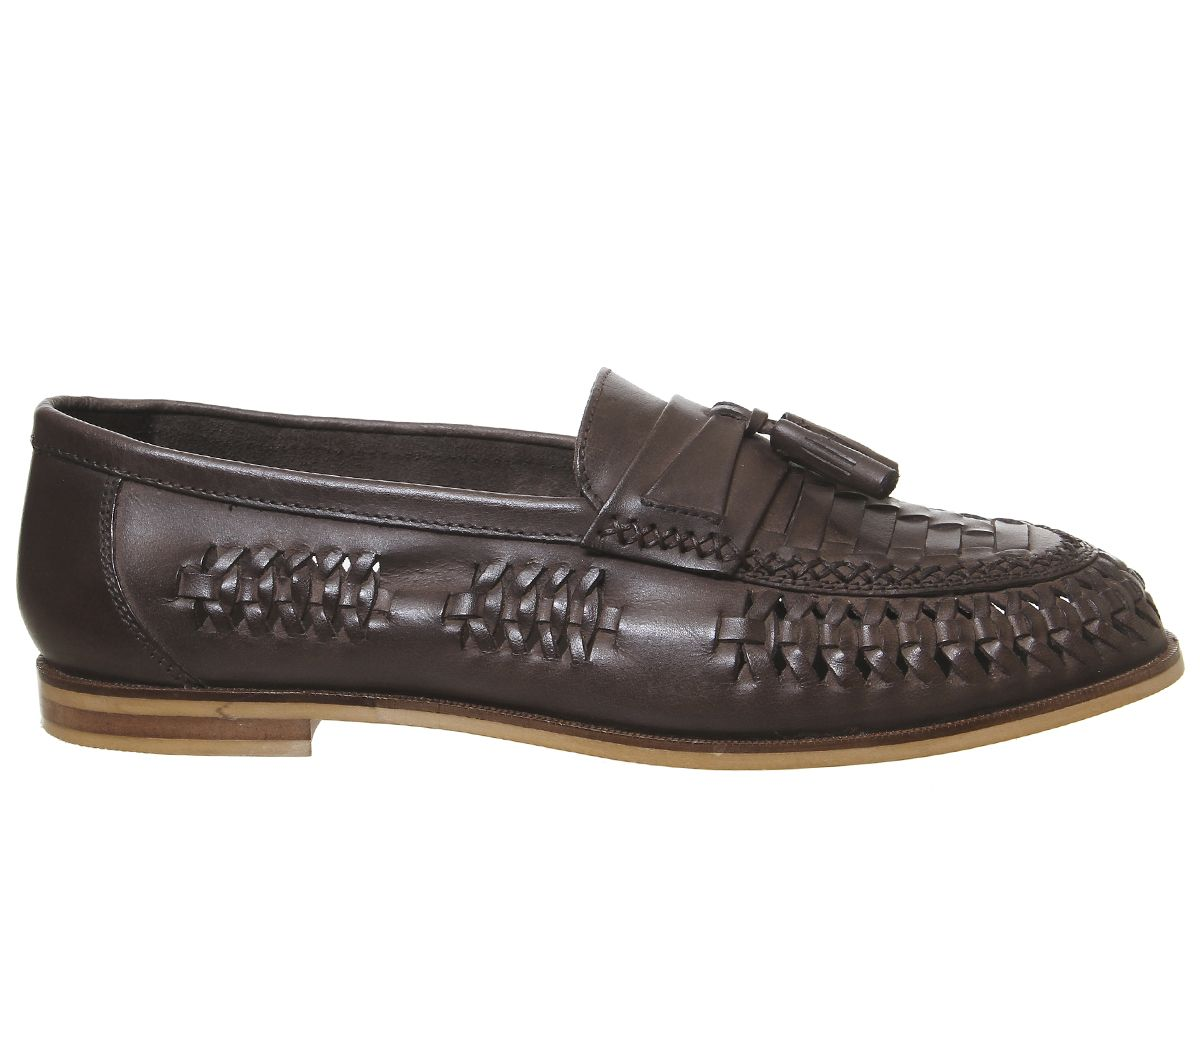 Mens Office Lewisham Woven Tassel Loafers Tan Washed Leather Casual Shoes